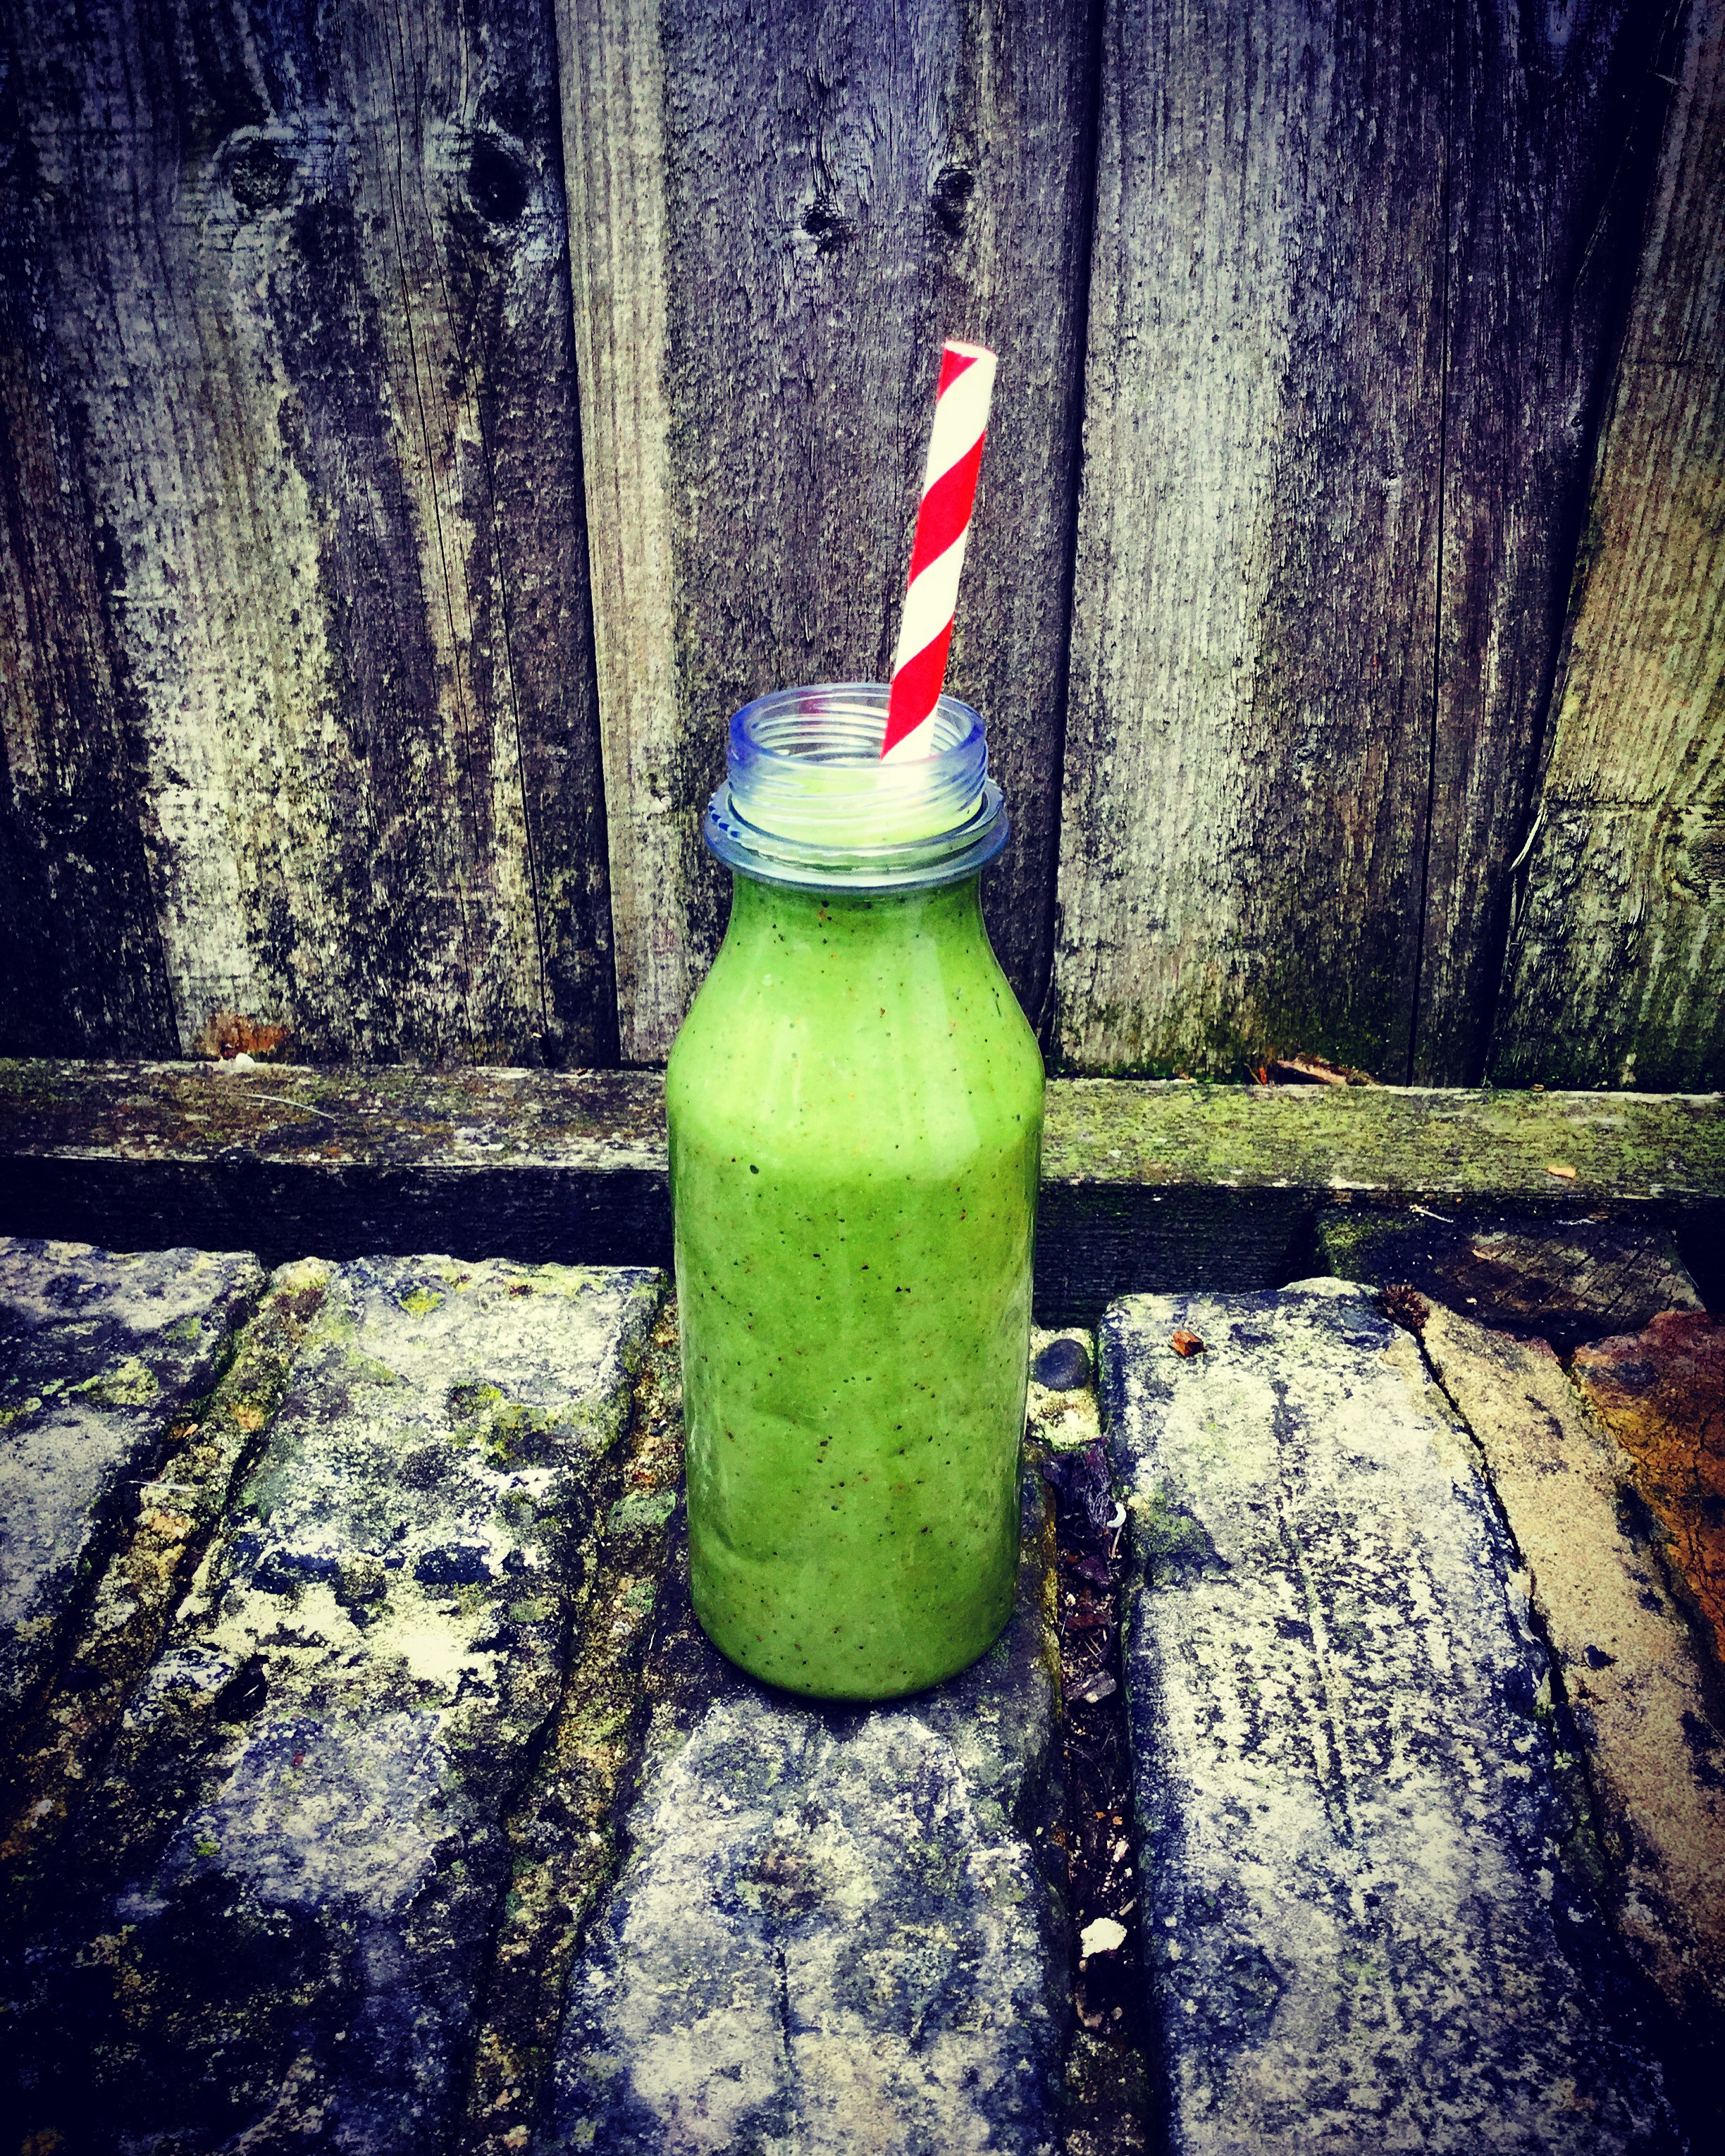 A delicious smoothie from leftover fruit and veg